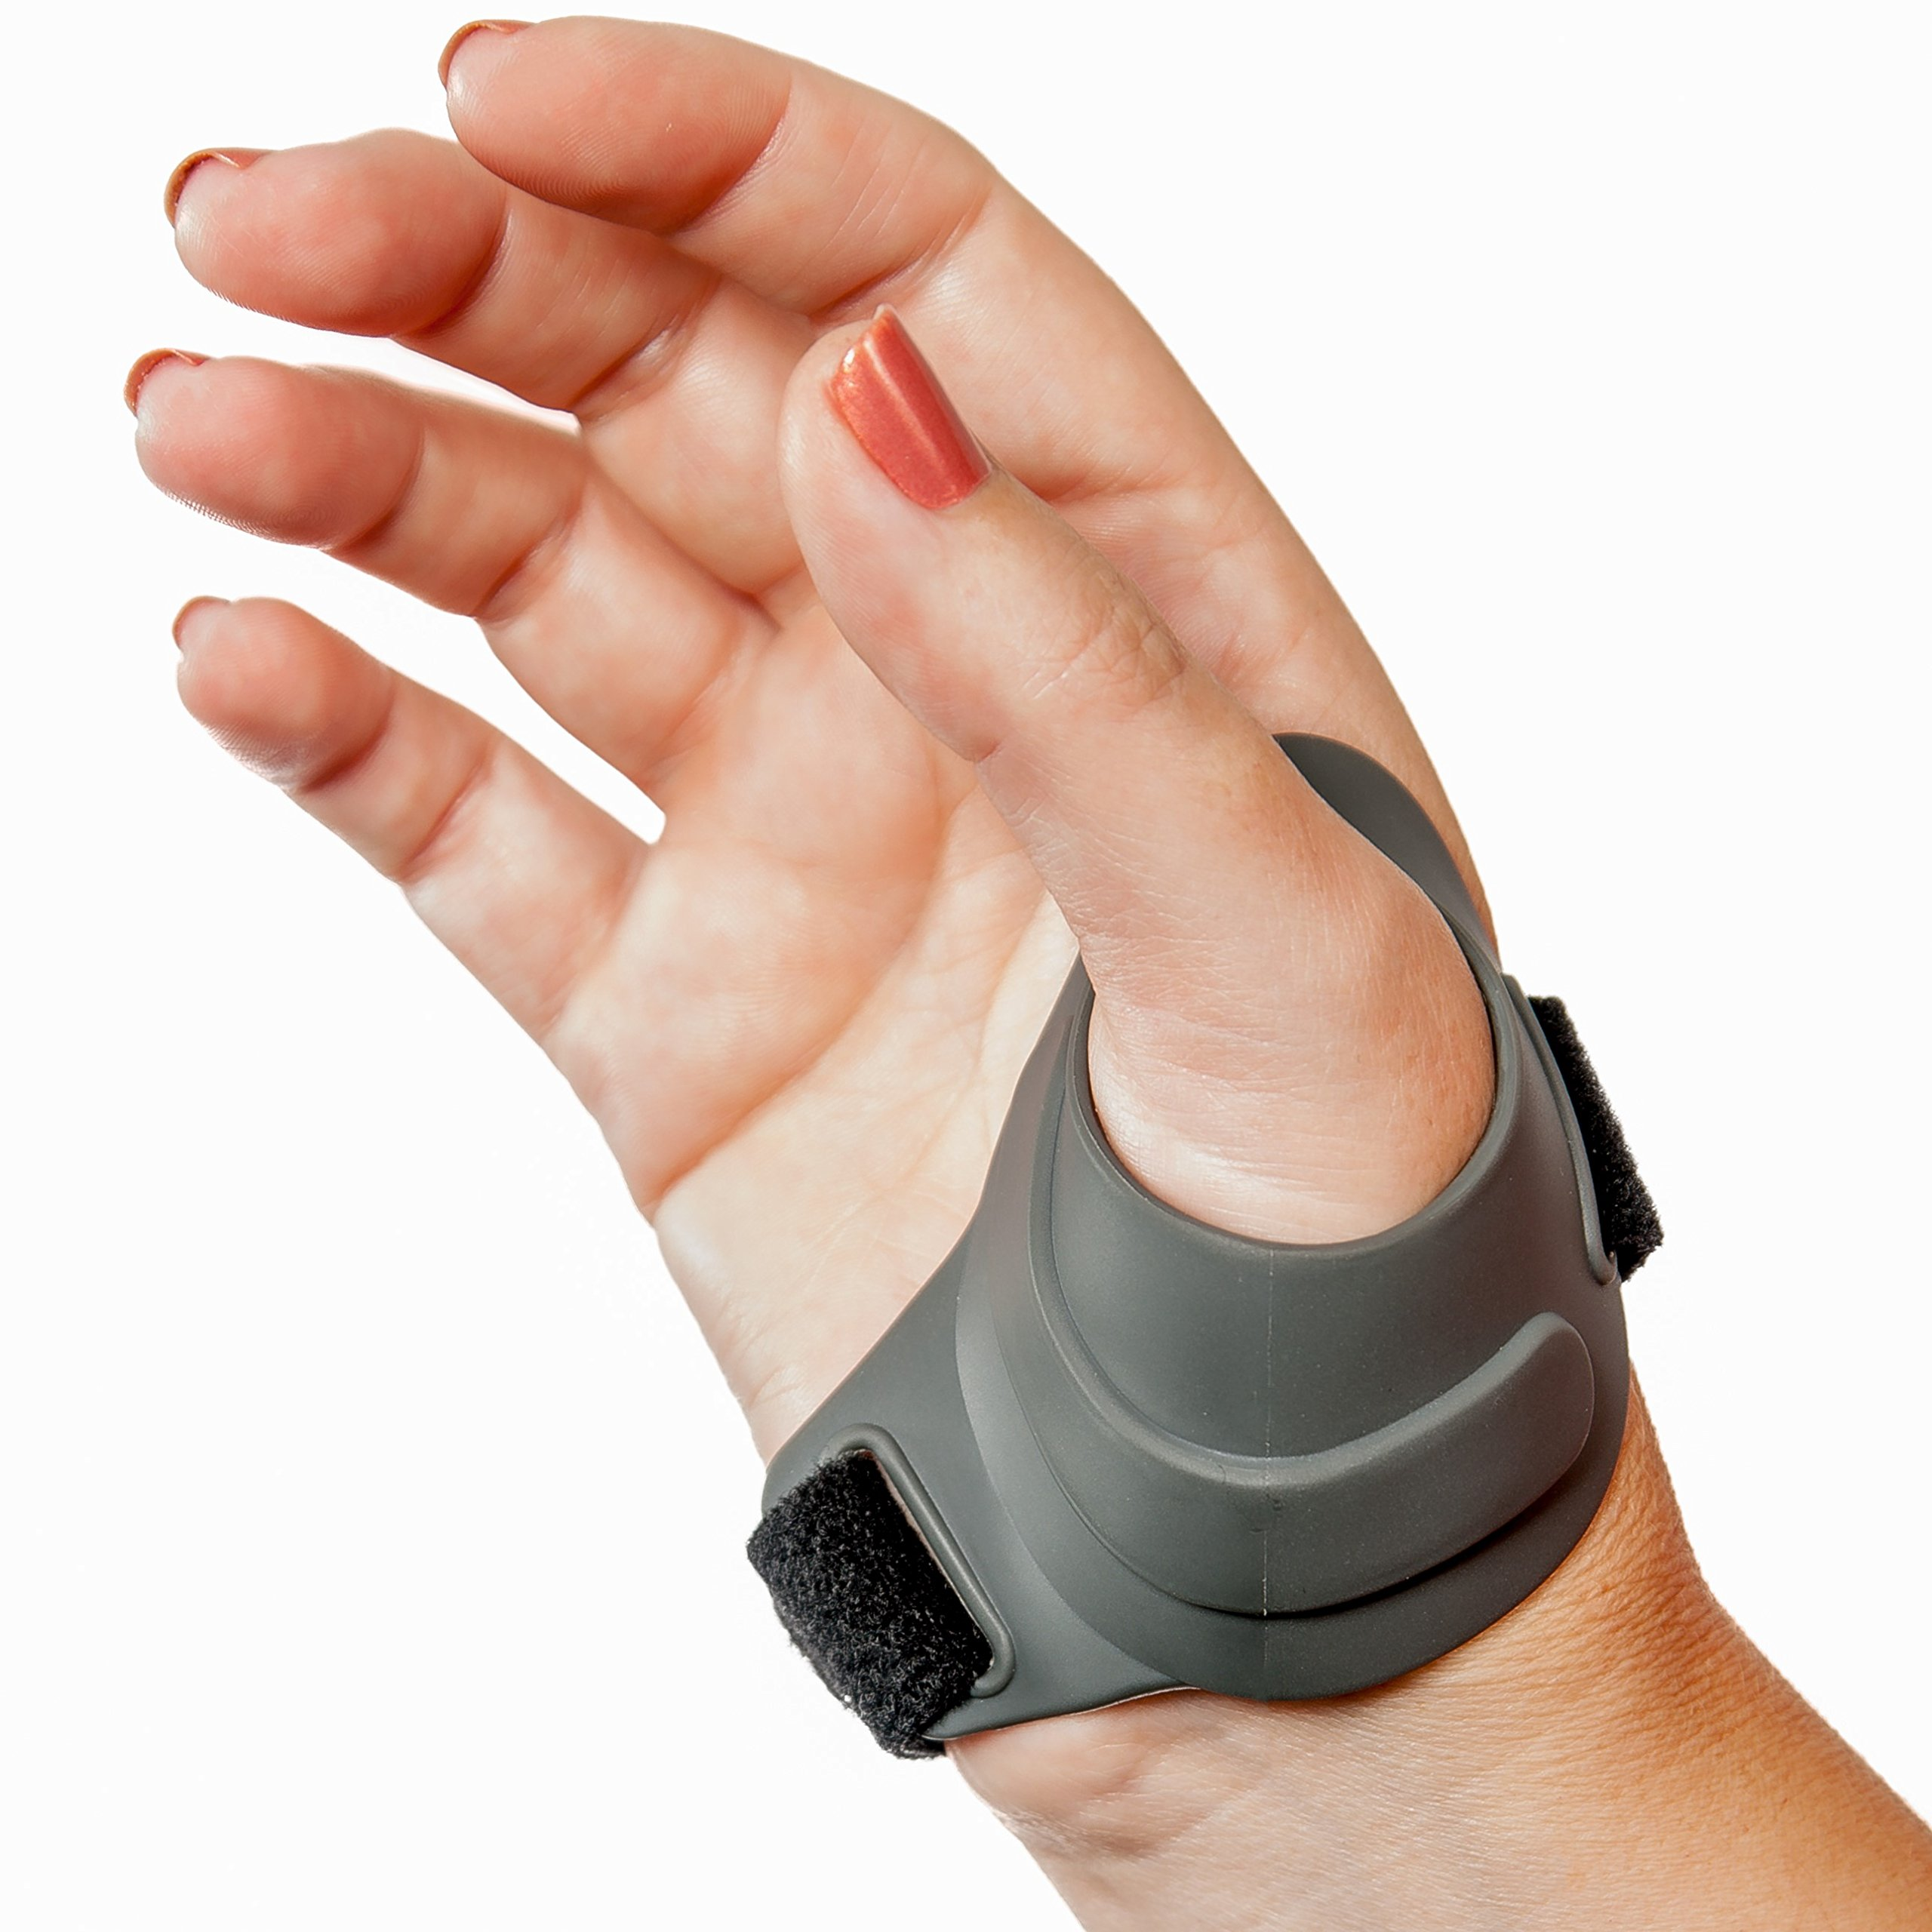 CMCcare Thumb Brace - Durable, Waterproof Brace for Thumb Arthritis Pain Relief, Right Hand, Size Large by Basko Healthcare